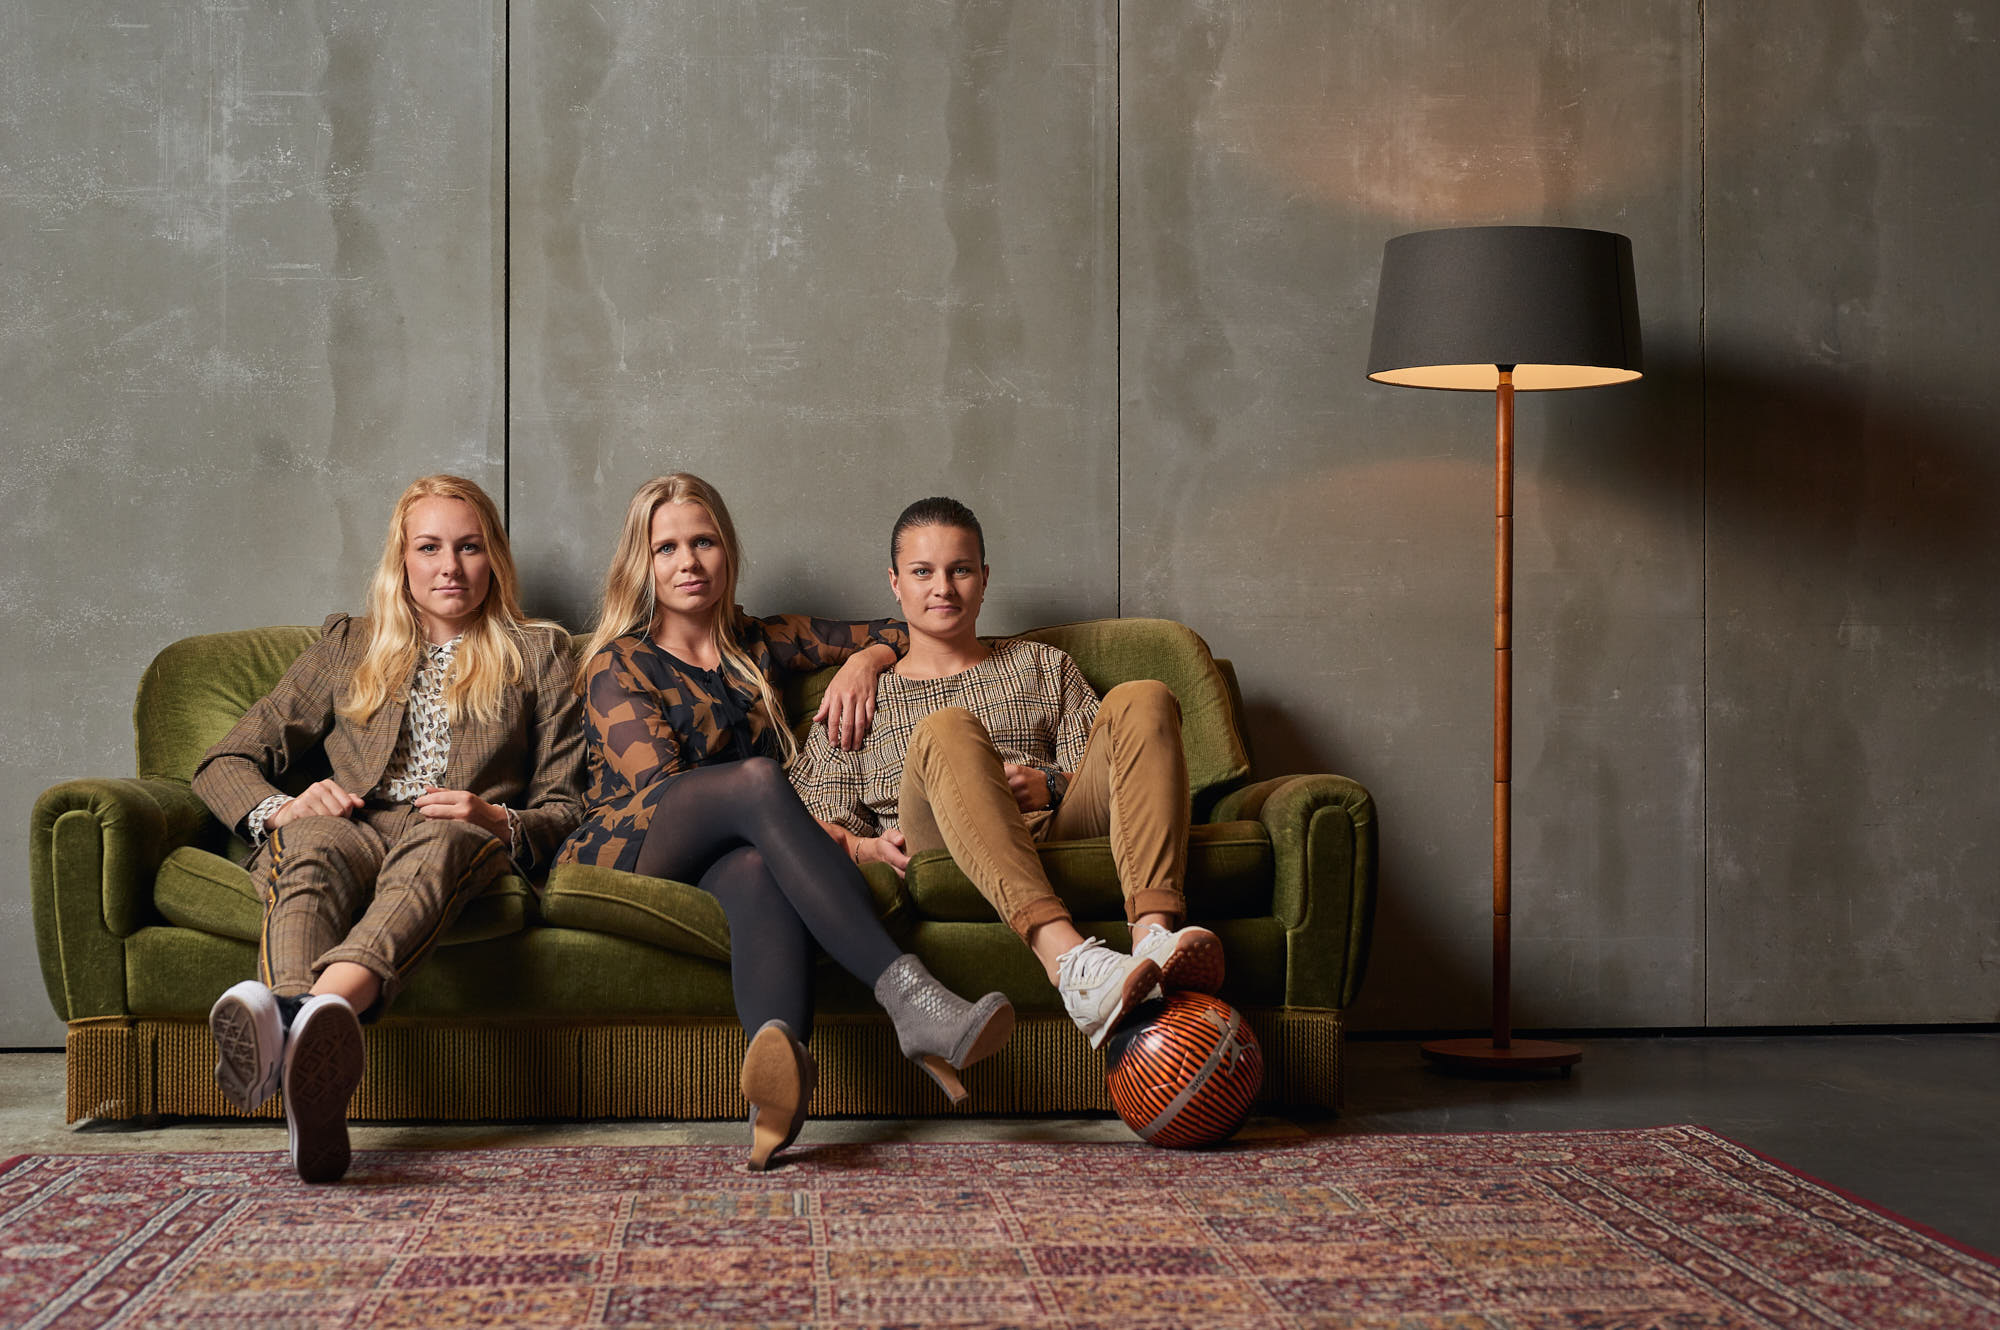 Group photo of football players Kika van Es, Sherida Spitse and Danique Kerkdijk